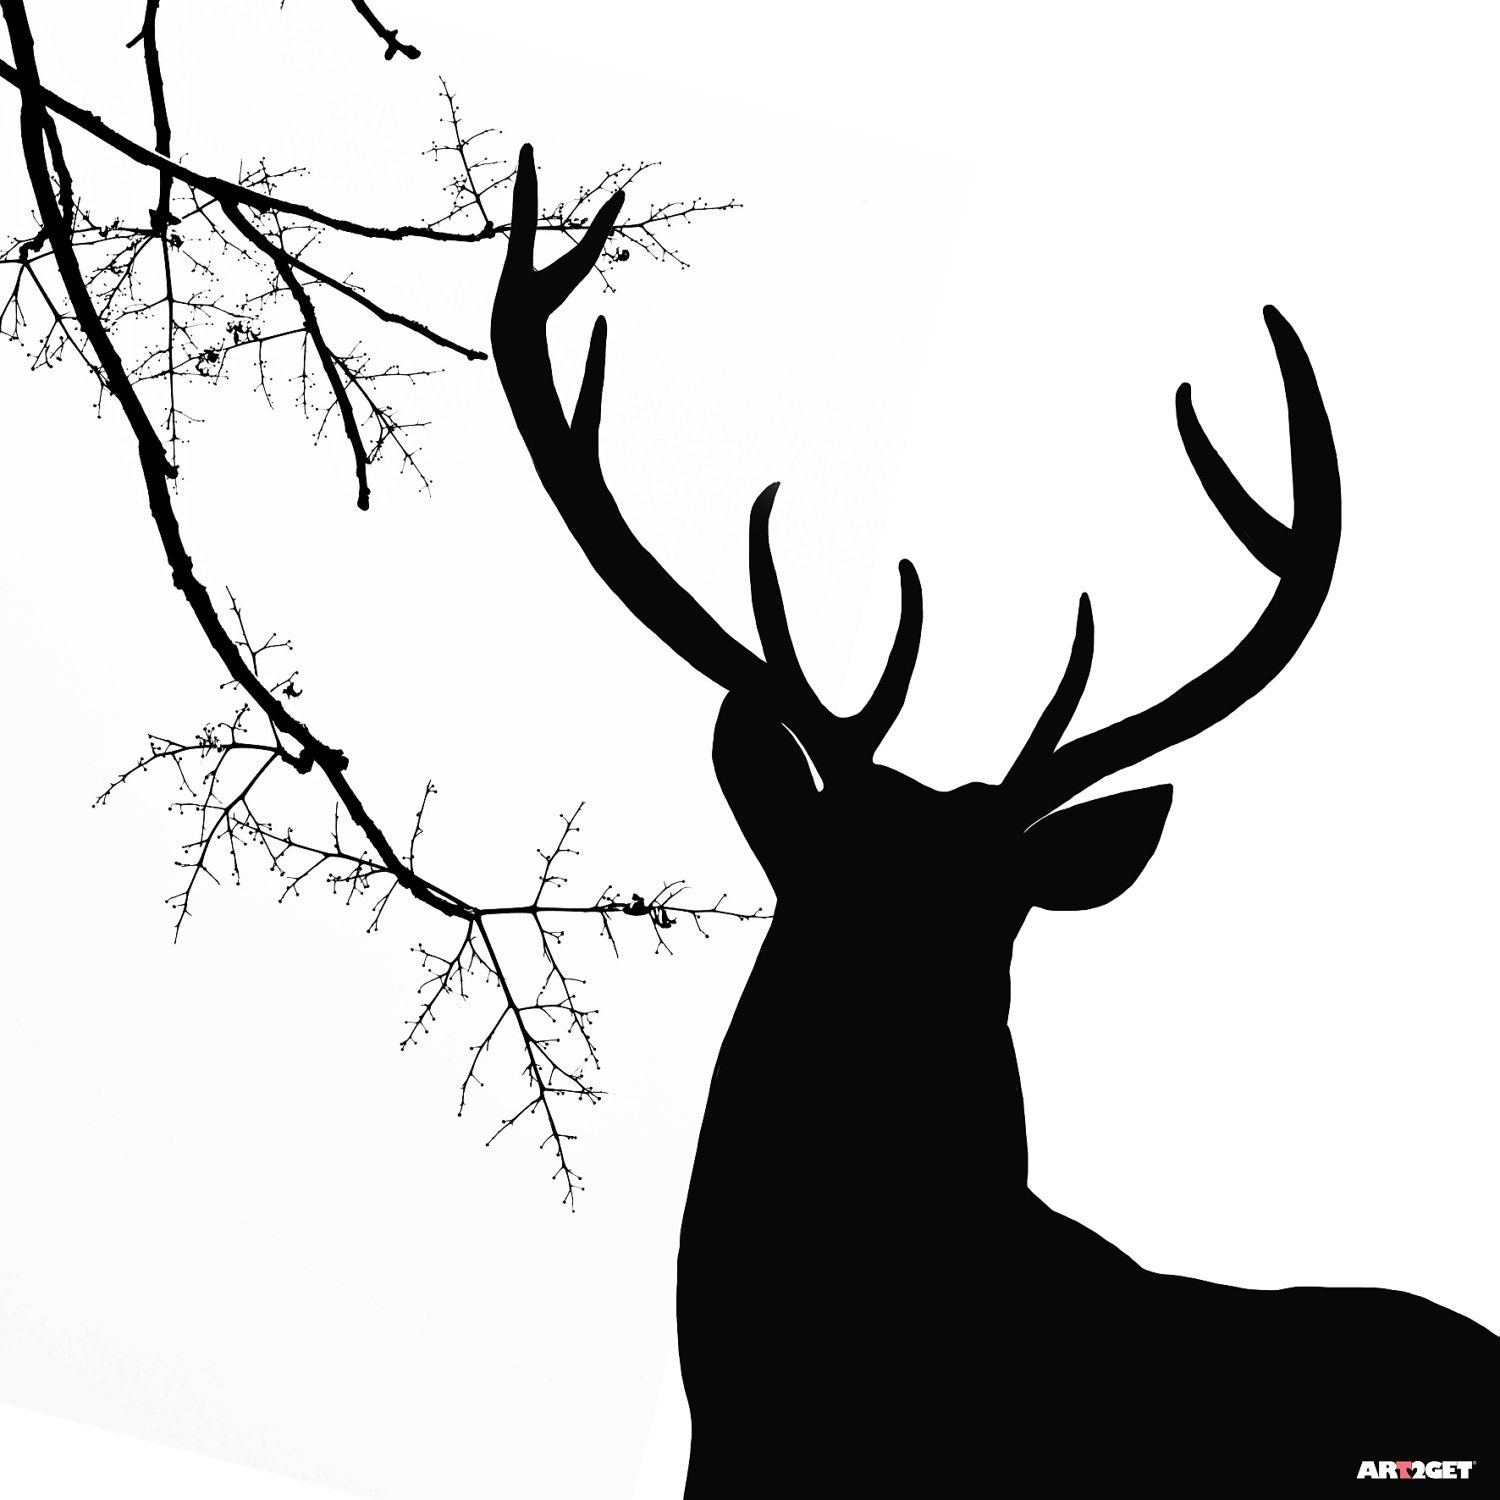 Deer Black And White Wall Art Print On Canvas For Room Decor